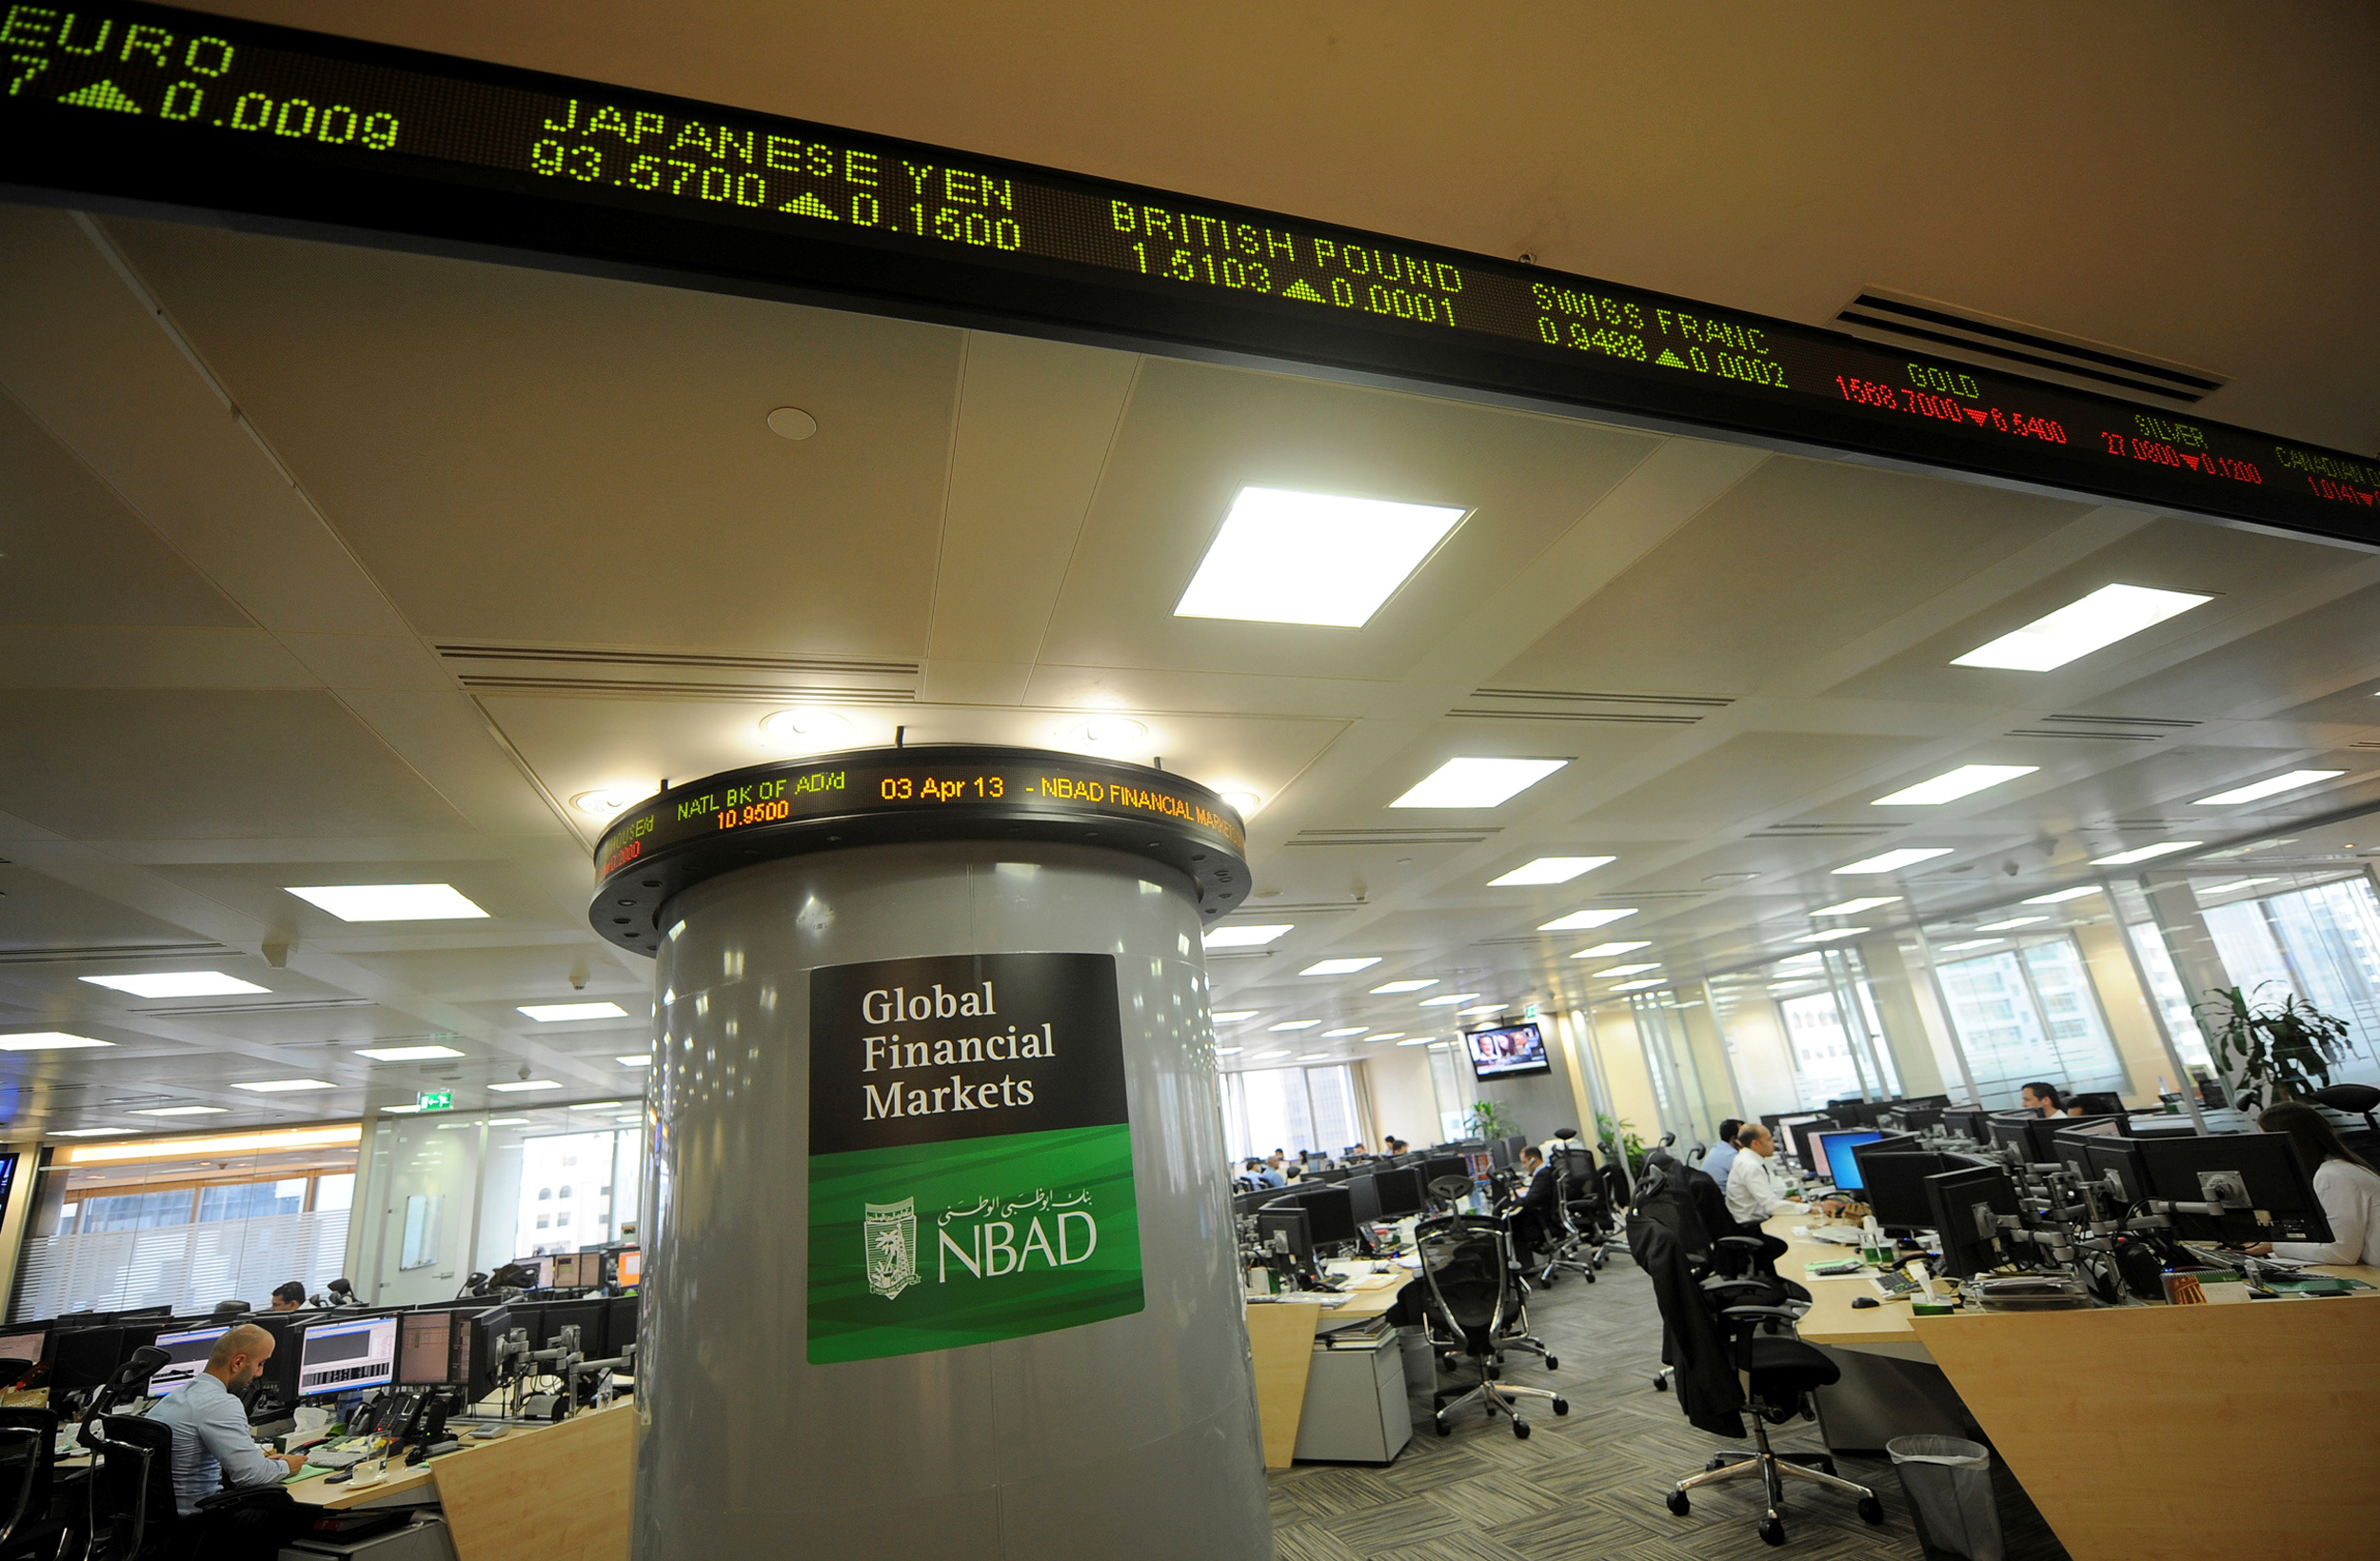 Employees are seen in the offices at the National Bank of Abu Dhabi headquarters